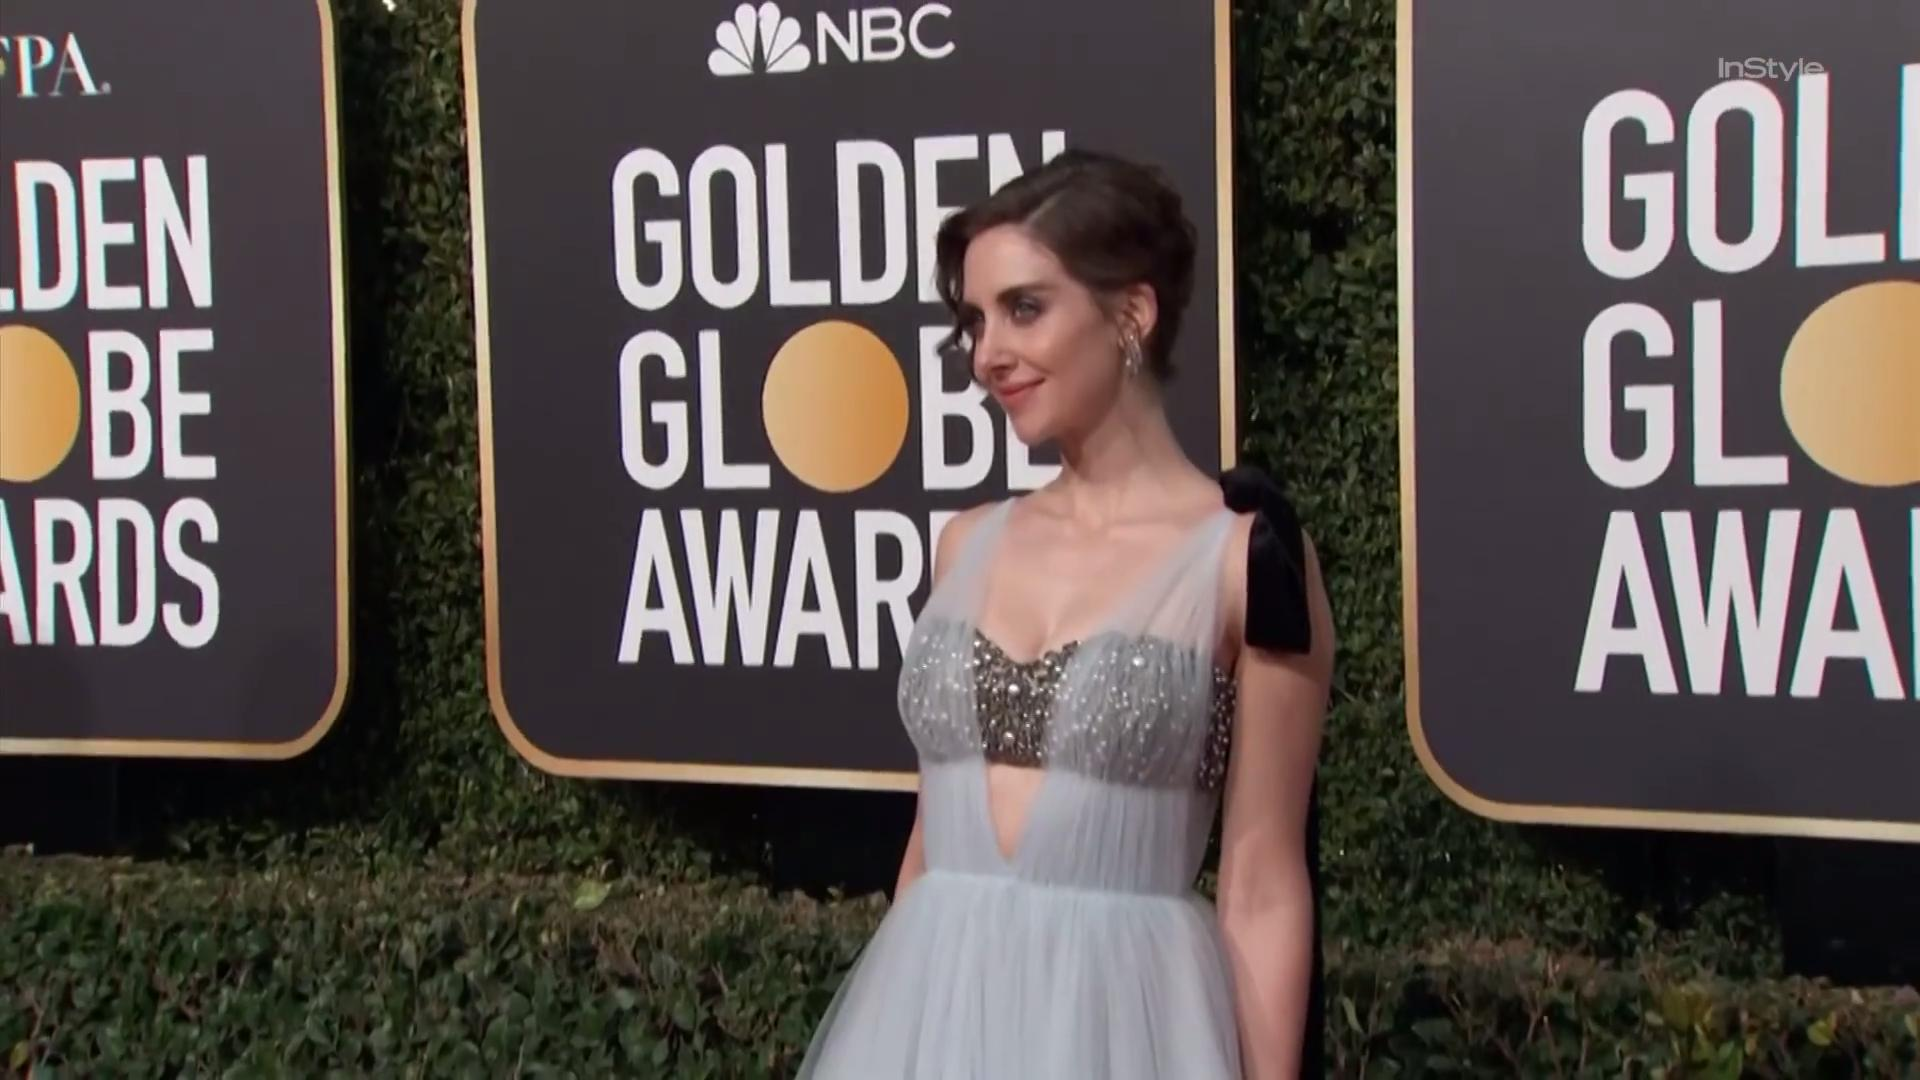 Alison Brie Breaks Out a Bedazzled Vera Wang Bra for the 2019 Golden Globes Red Carpet